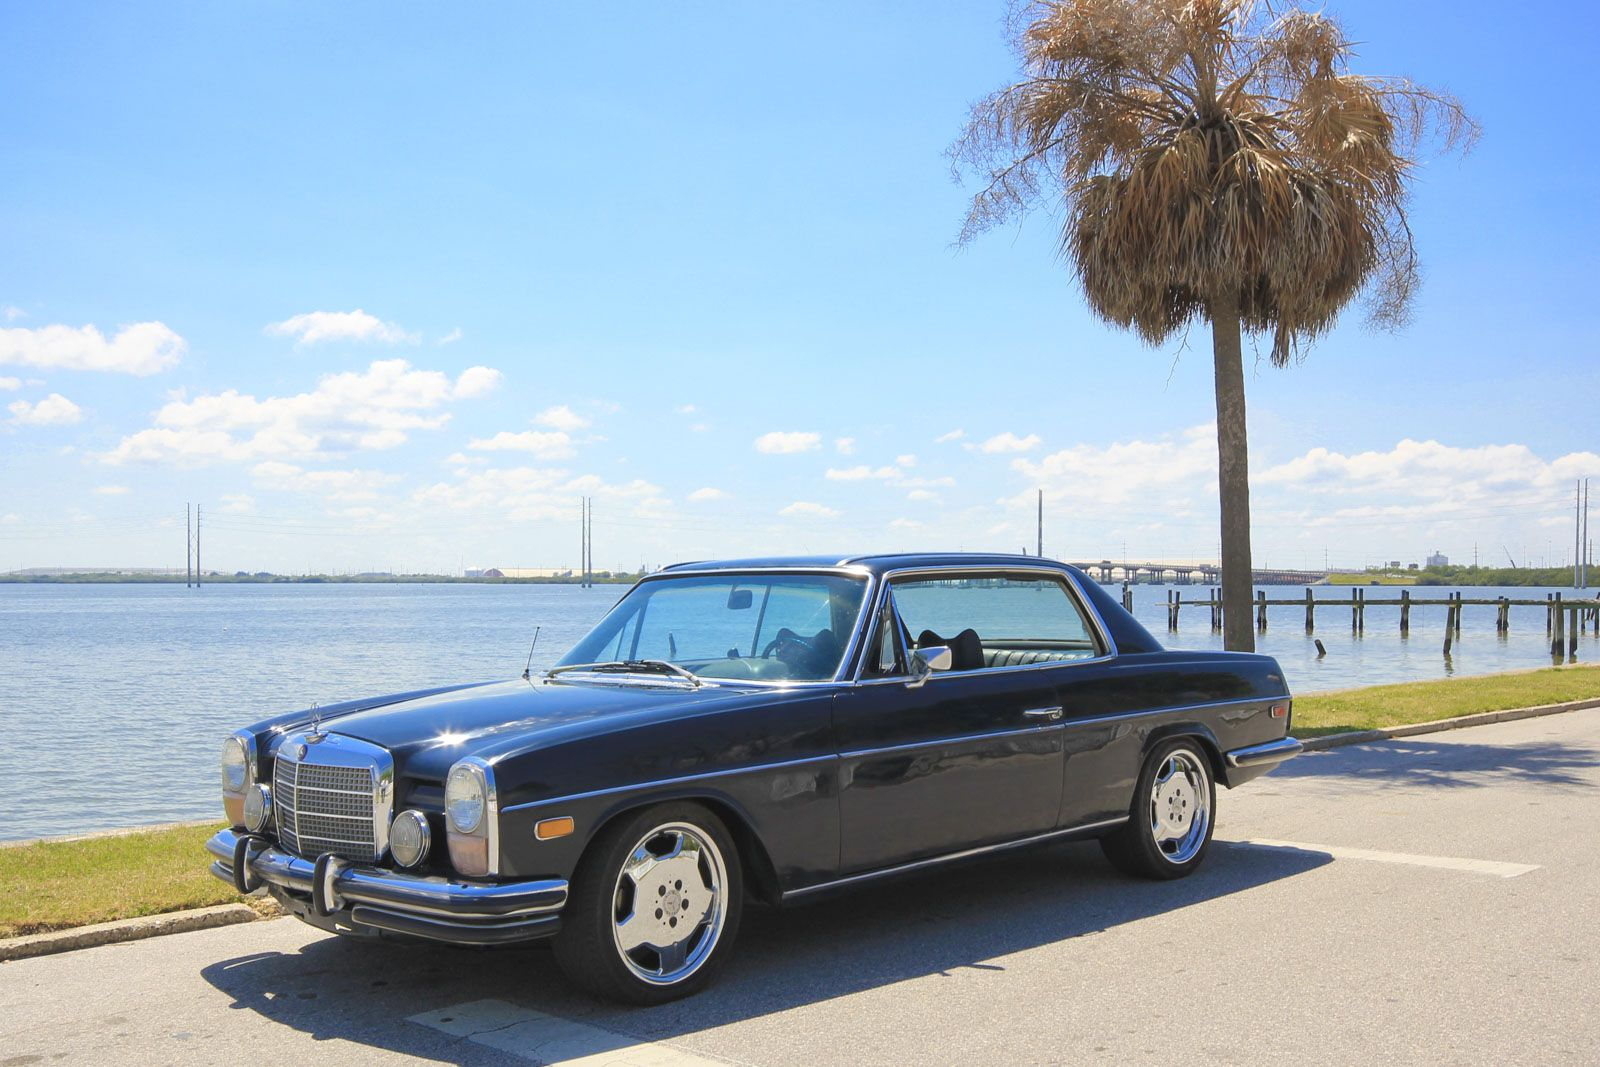 1972 Mercedes Benz 250c on staggered 17-inch monoblocks in beautiful Tampa, Florida. #DriveTastefully W114 in paradise